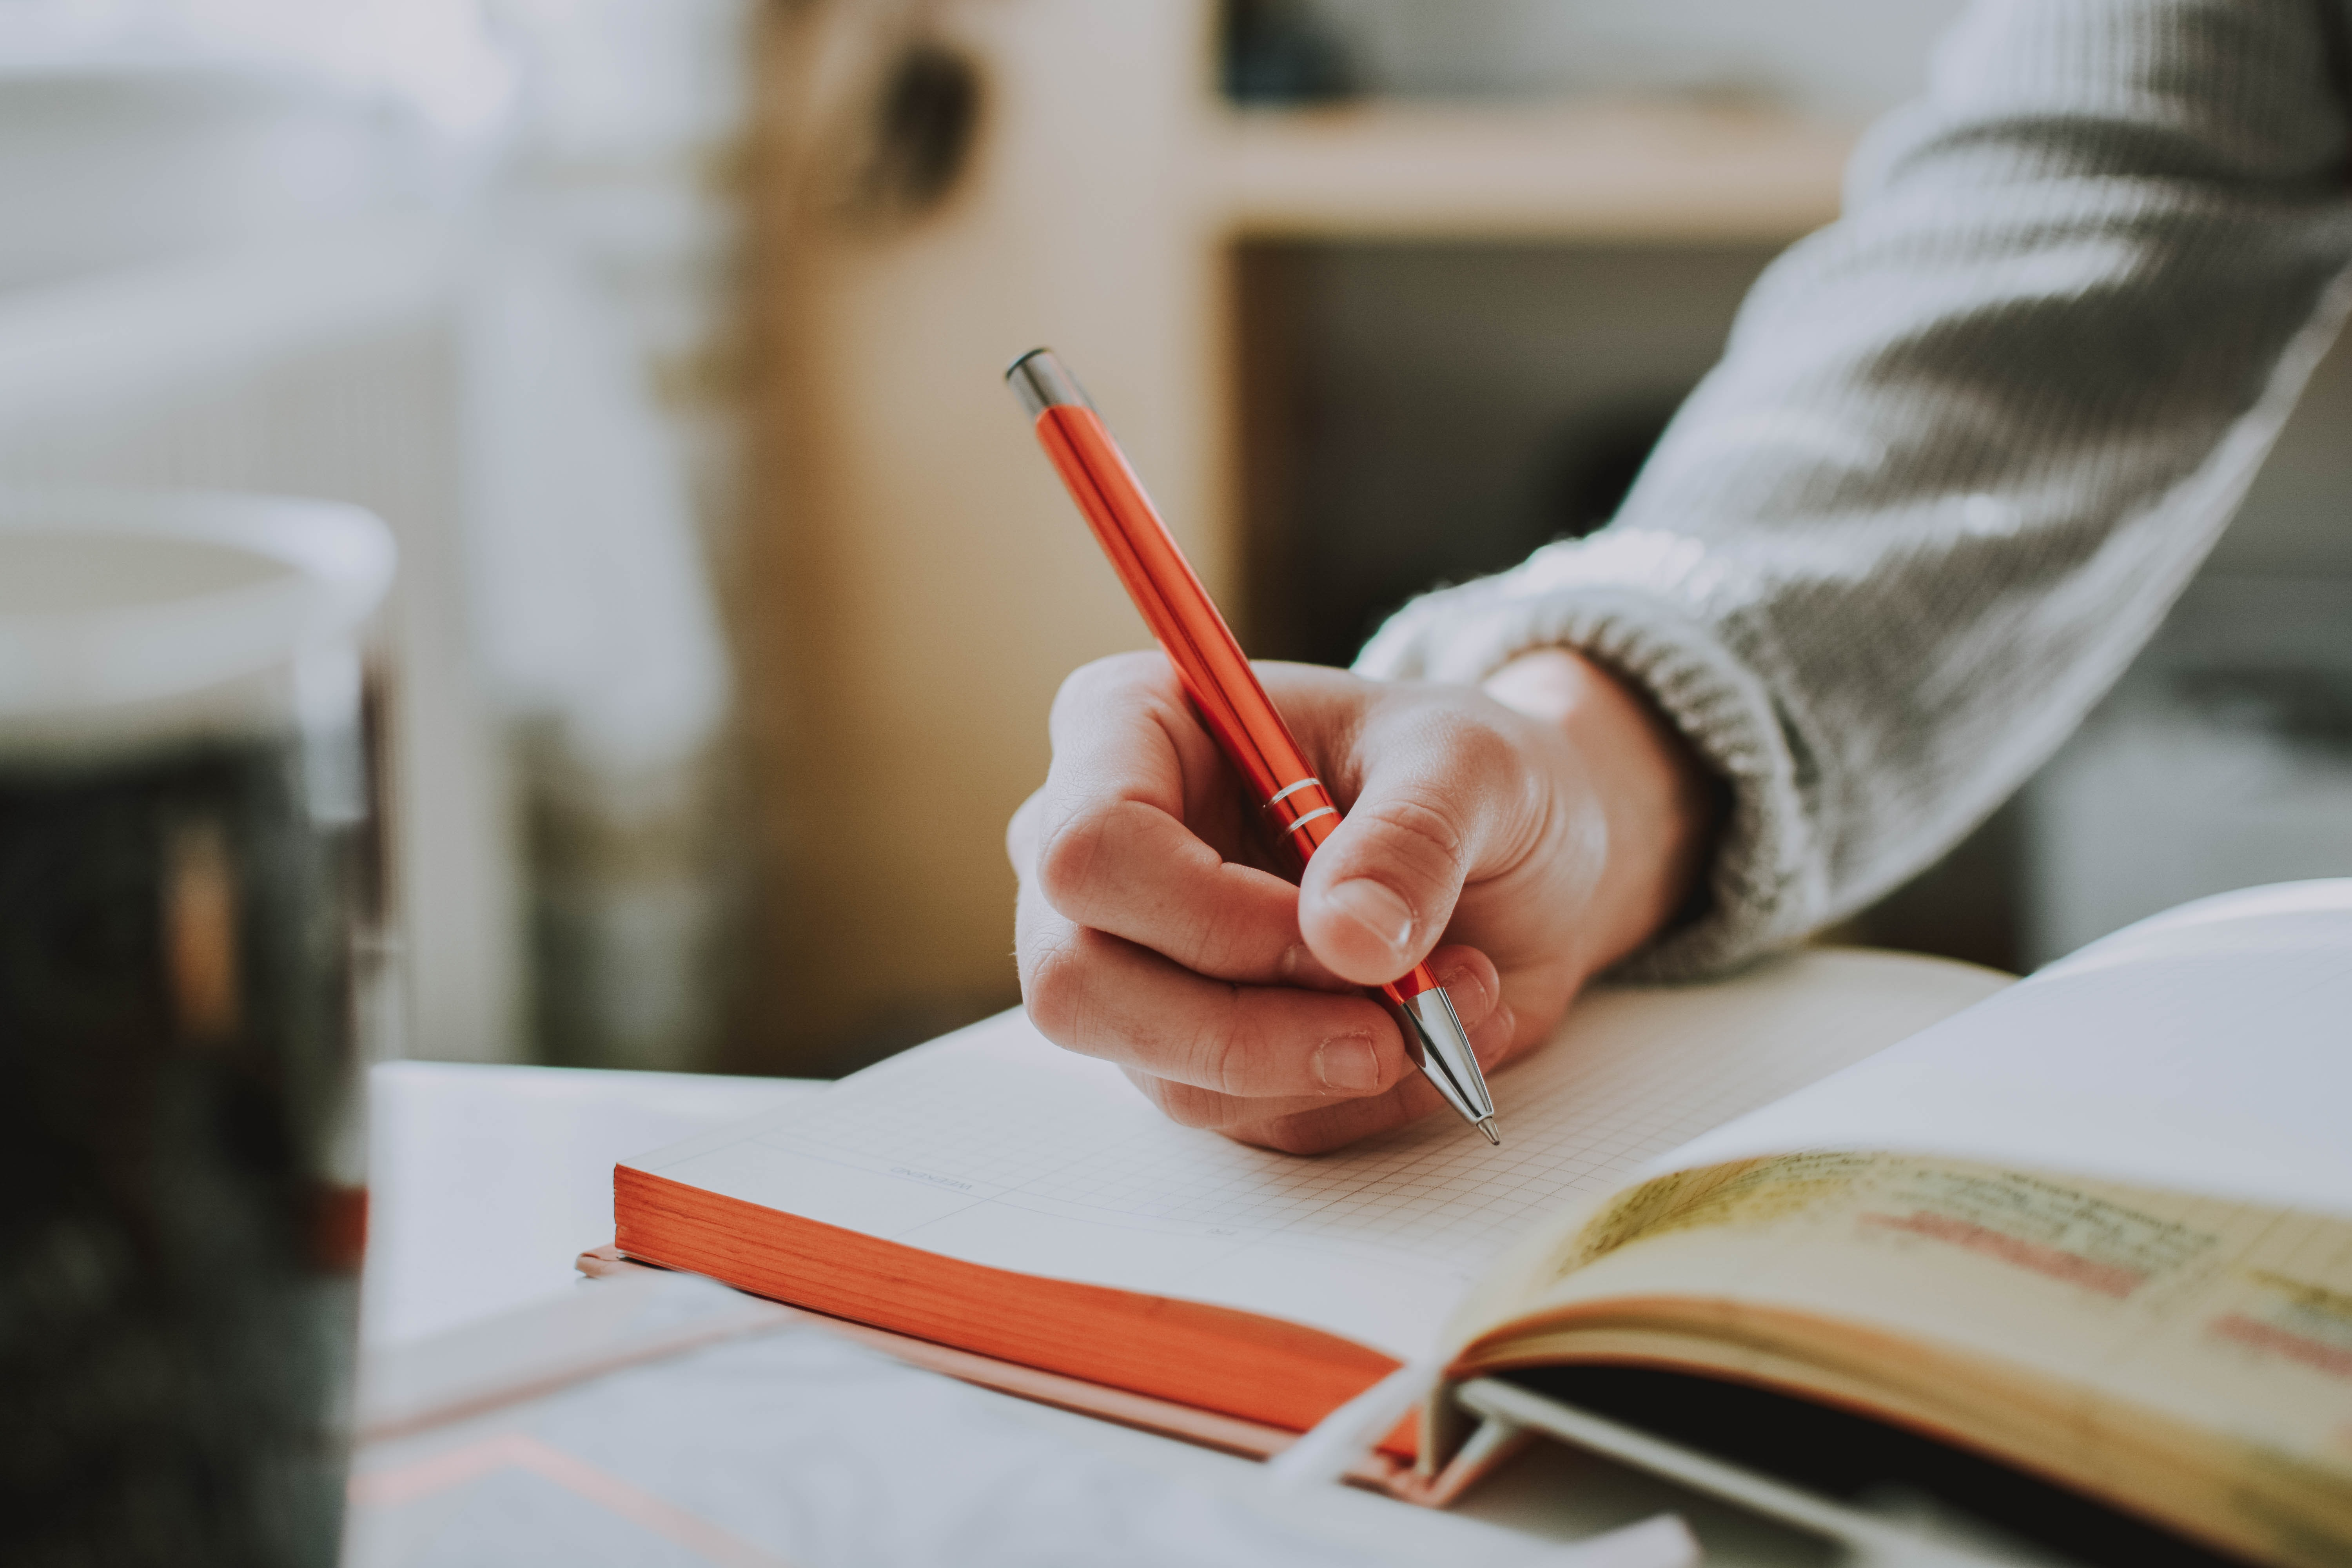 Summer Journaling Prompts for Self-Care